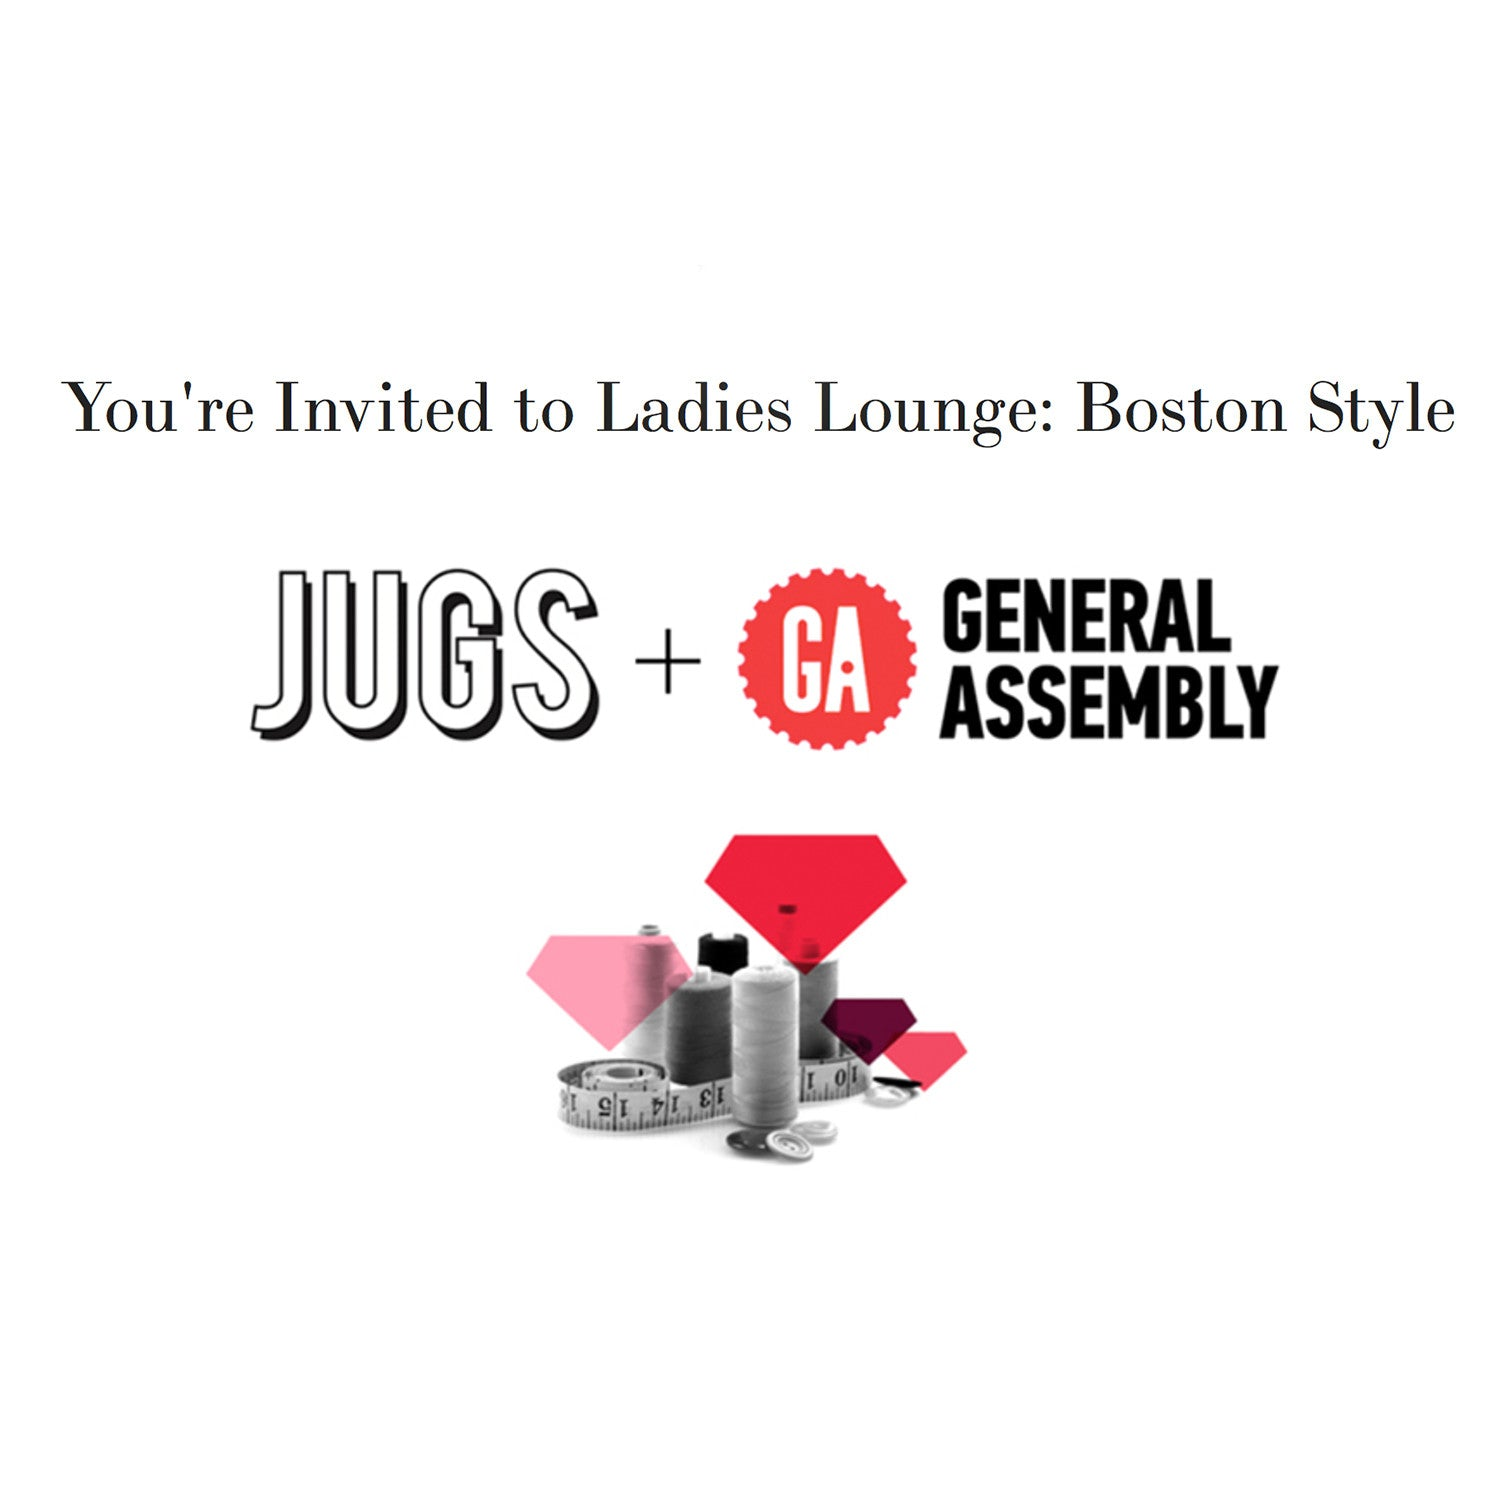 Pop-Up + Ladies Lounge: Style Made in Boston on July 27, 2017